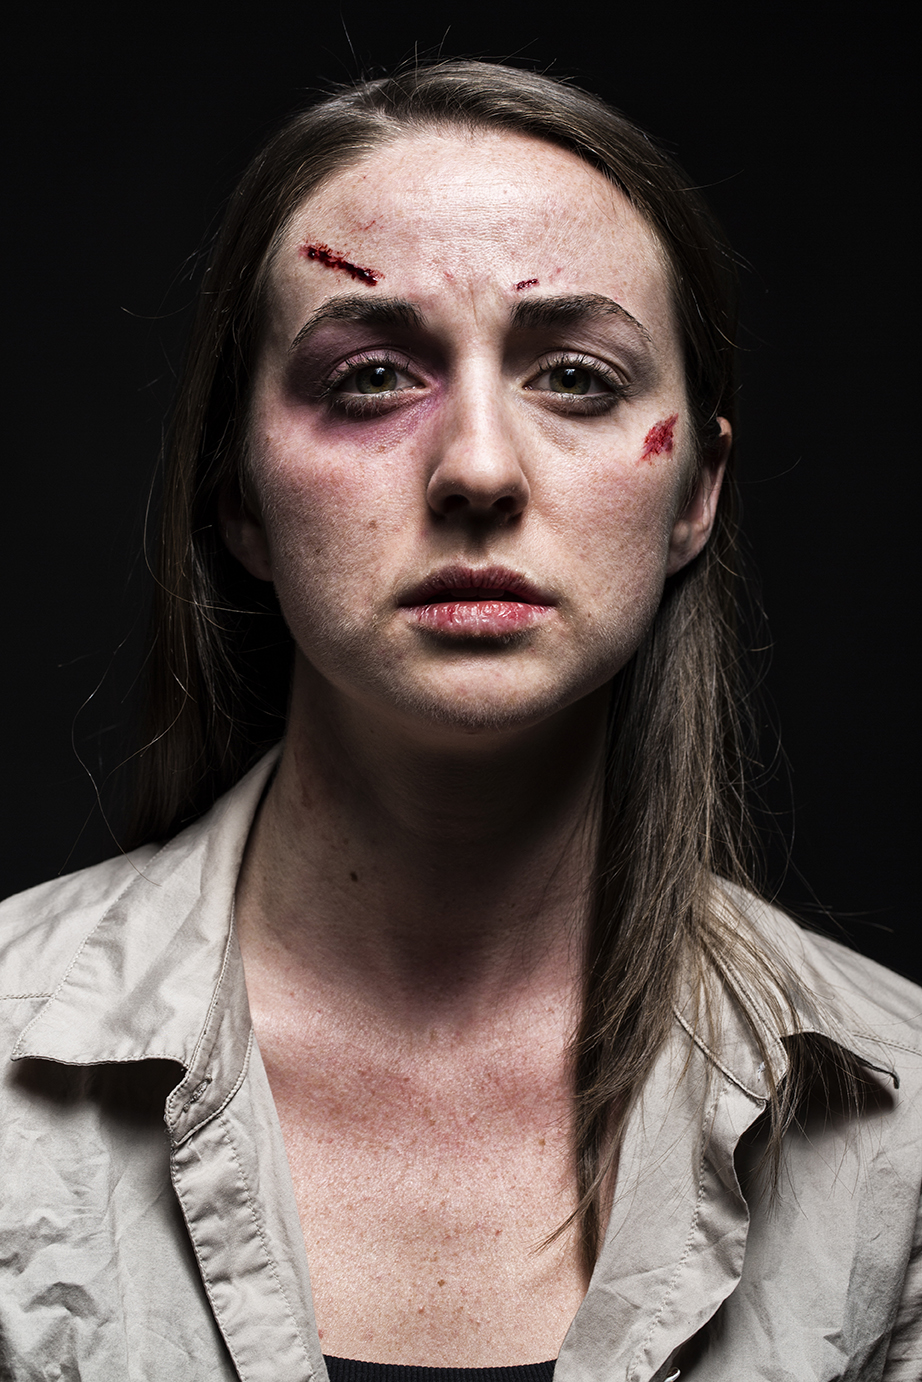 Special Effects - Domestic Abuse Victim